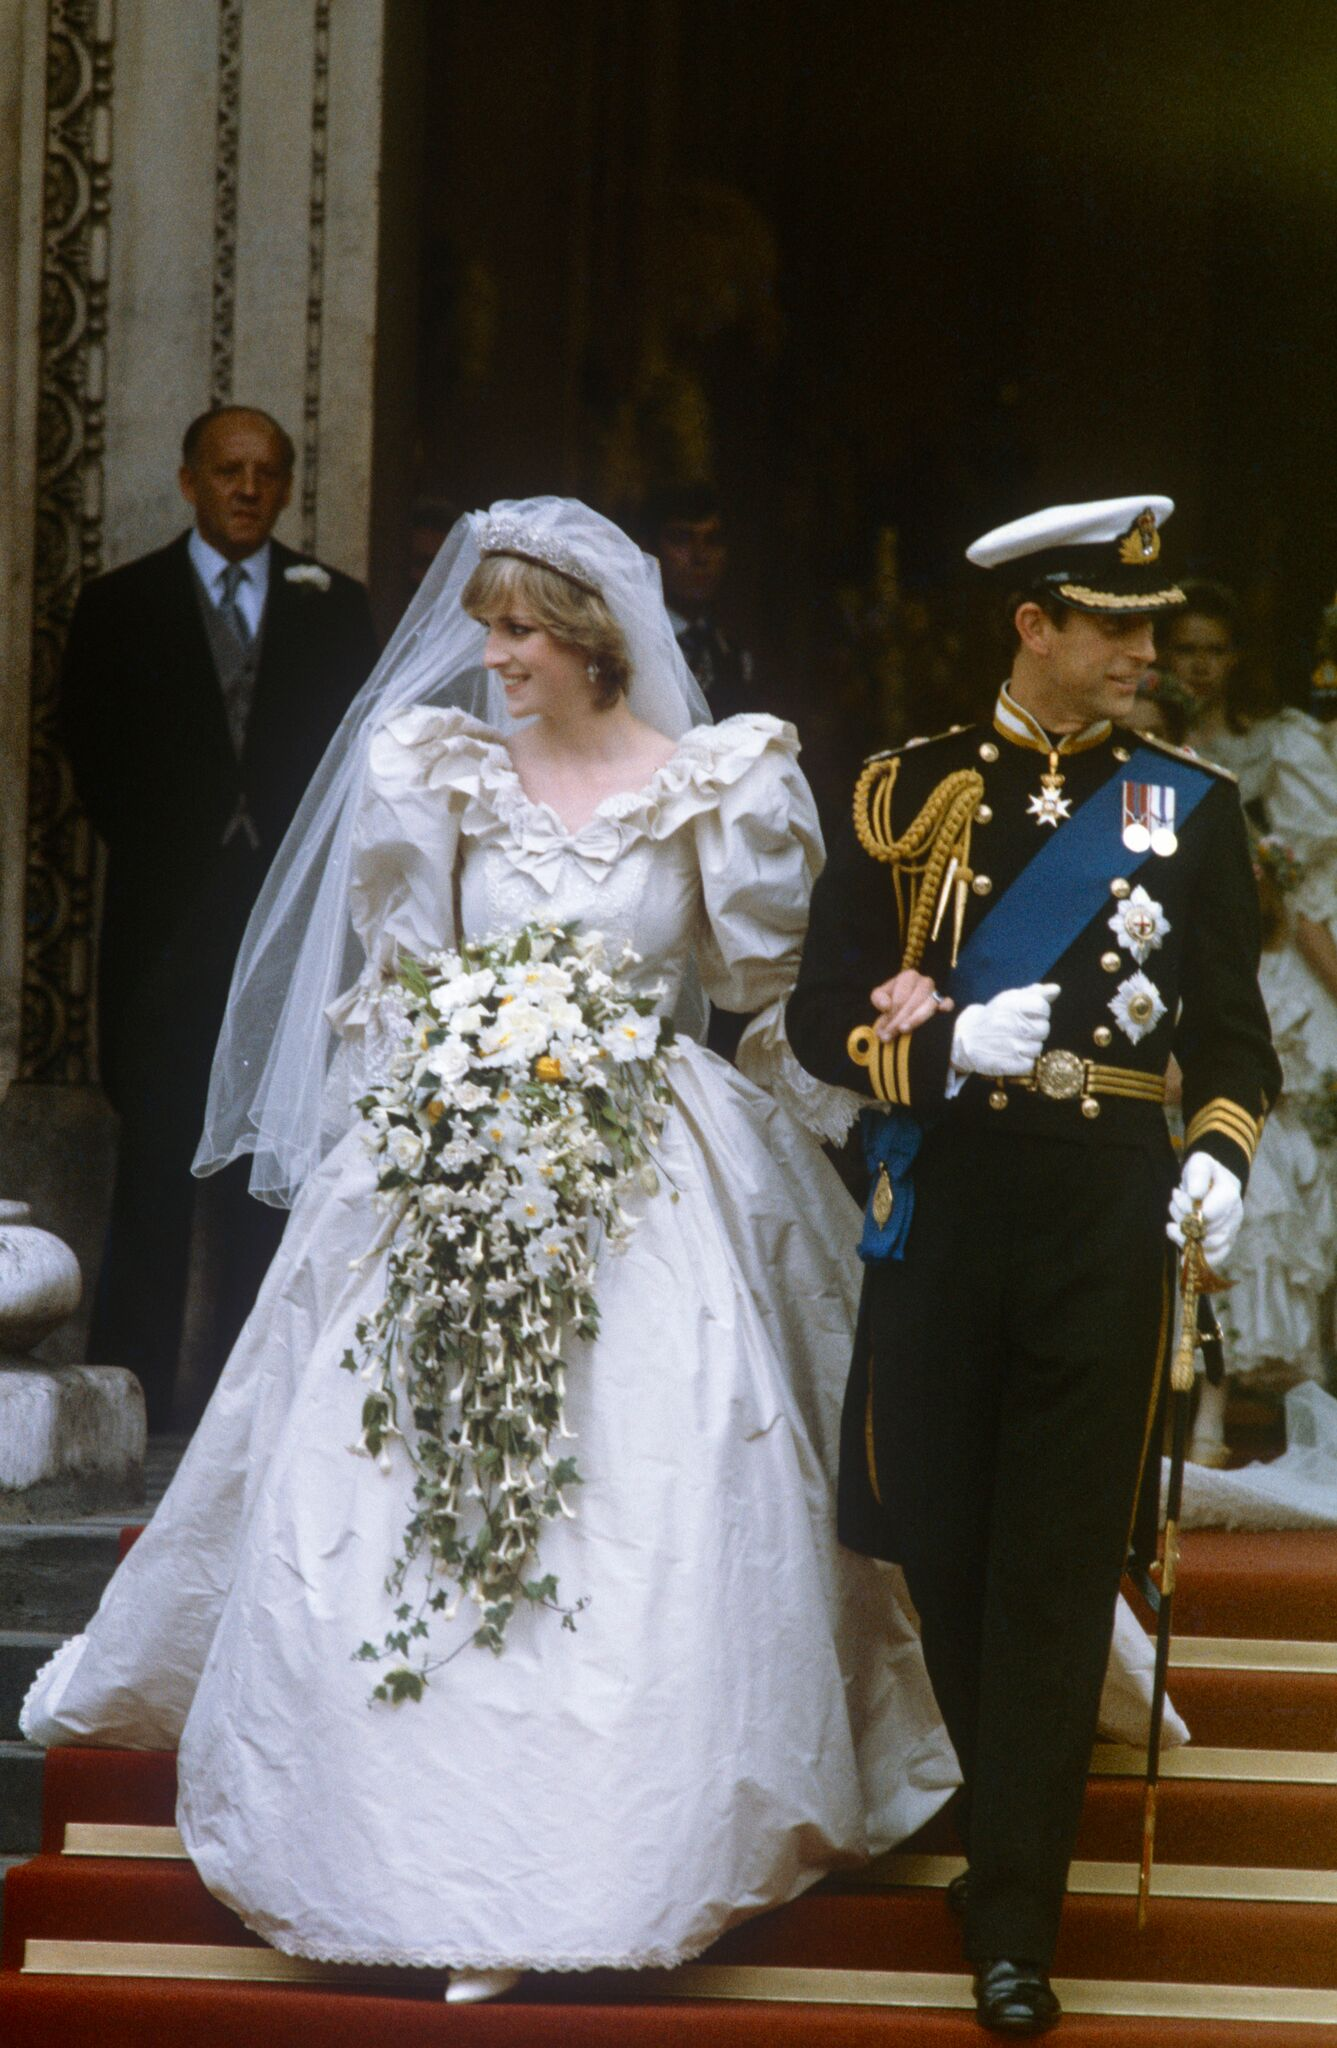 Princess Diana and Prince Charles leaving the church on their wedding day | Getty Images